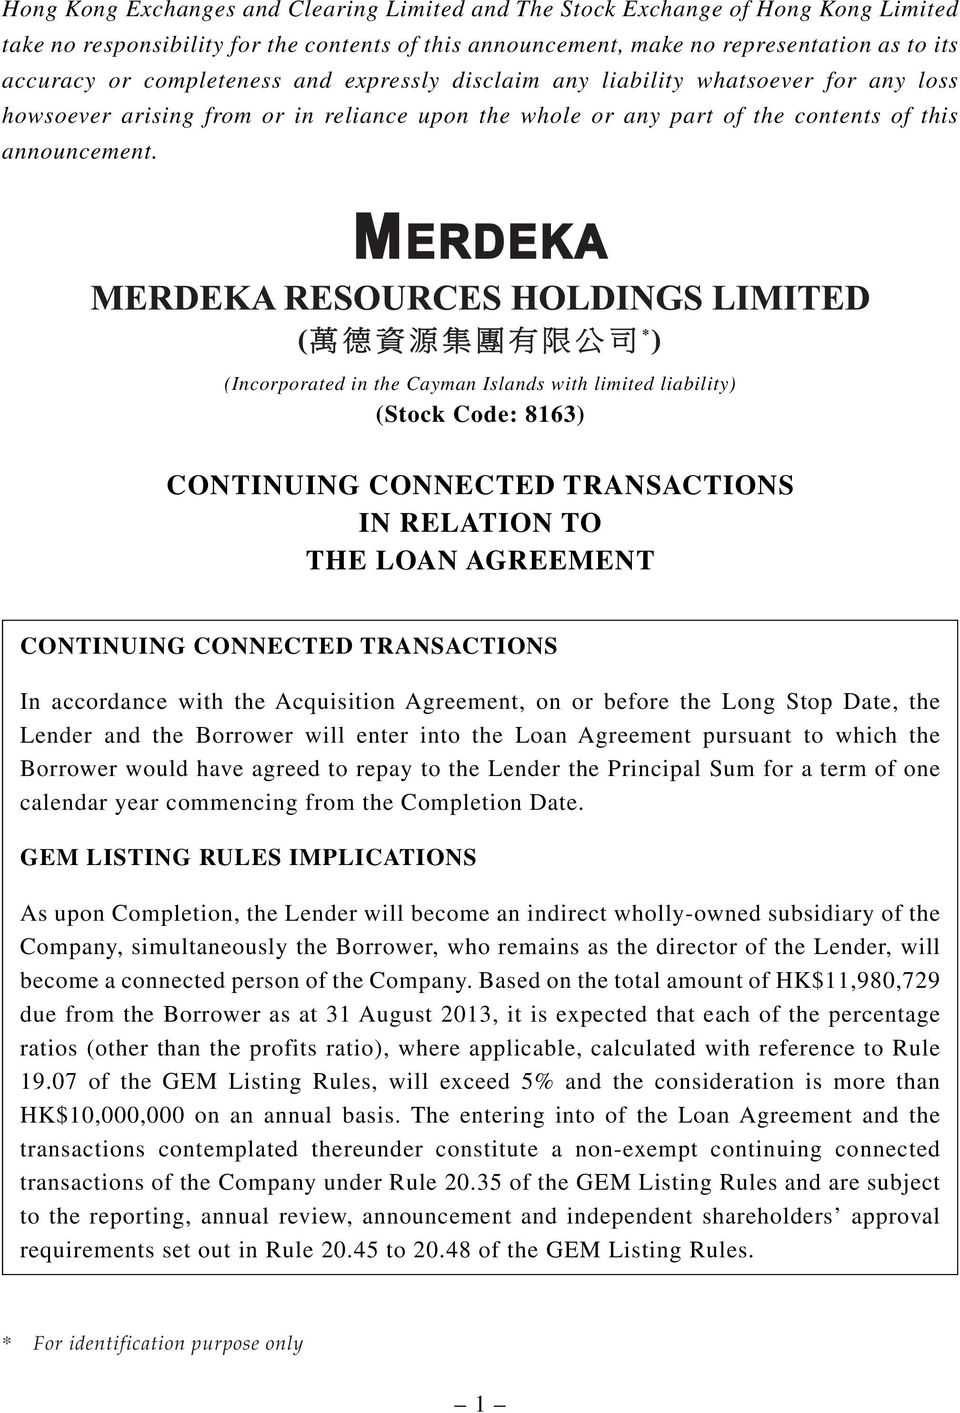 (Incorporated in the Cayman Islands with limited liability) (Stock Code: 8163) CONTINUING CONNECTED TRANSACTIONS IN RELATION TO THE LOAN AGREEMENT CONTINUING CONNECTED TRANSACTIONS In accordance with